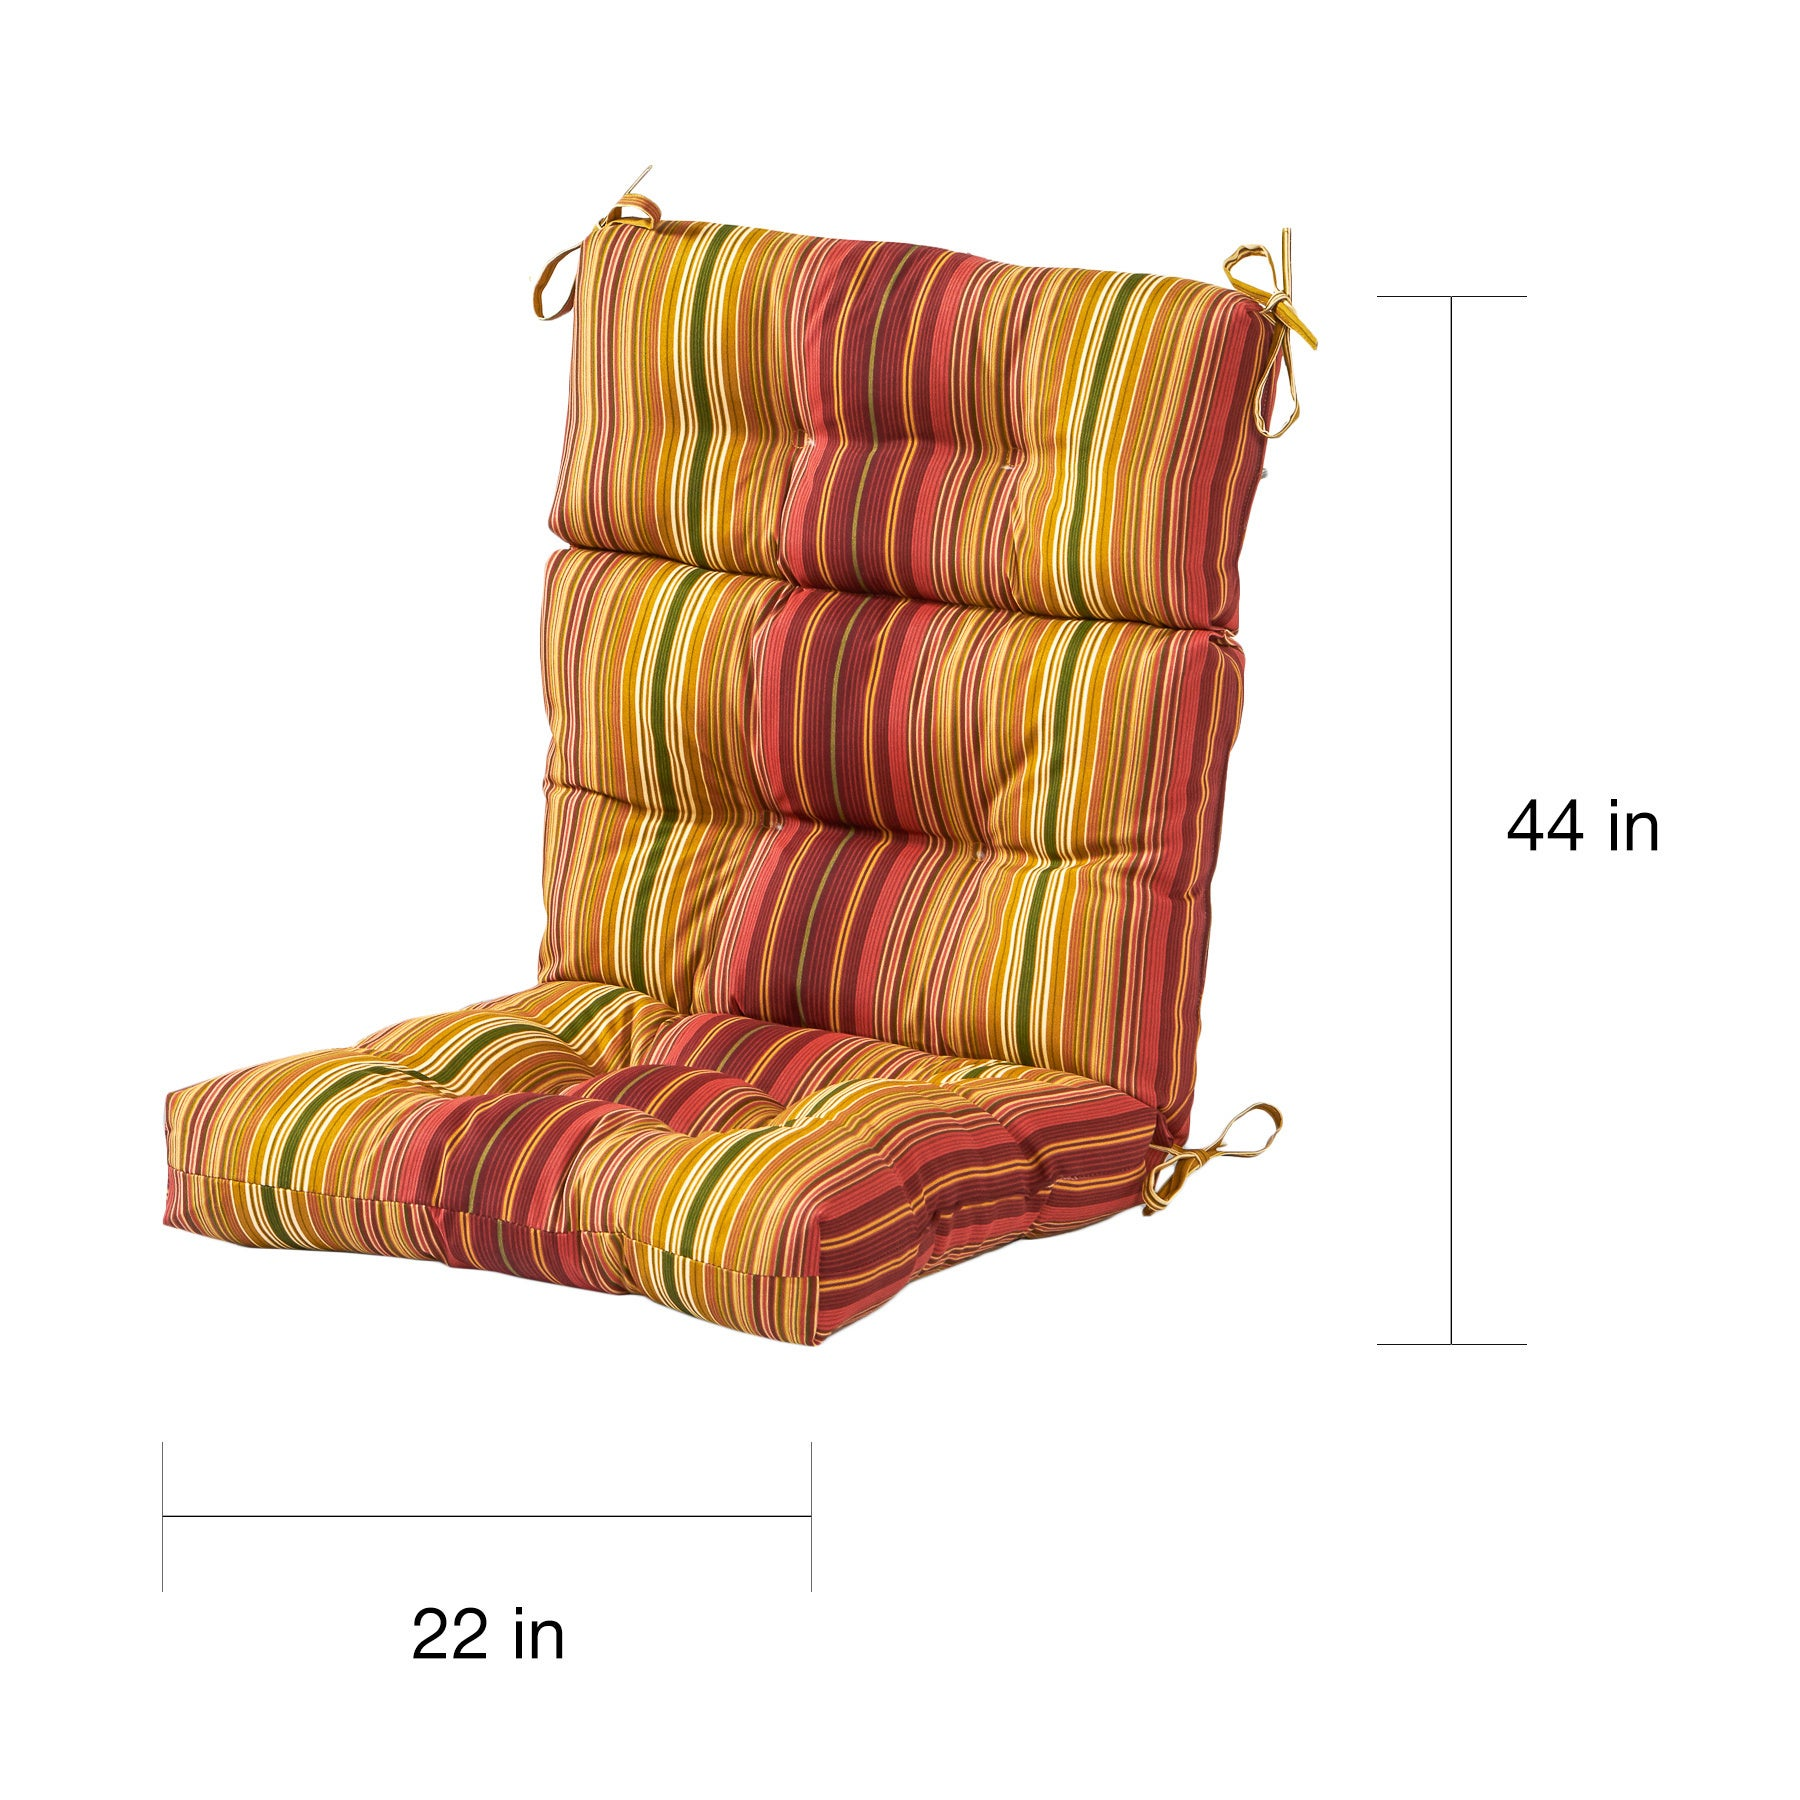 chairs gallery blanket back chair pillow desk office best cushion for